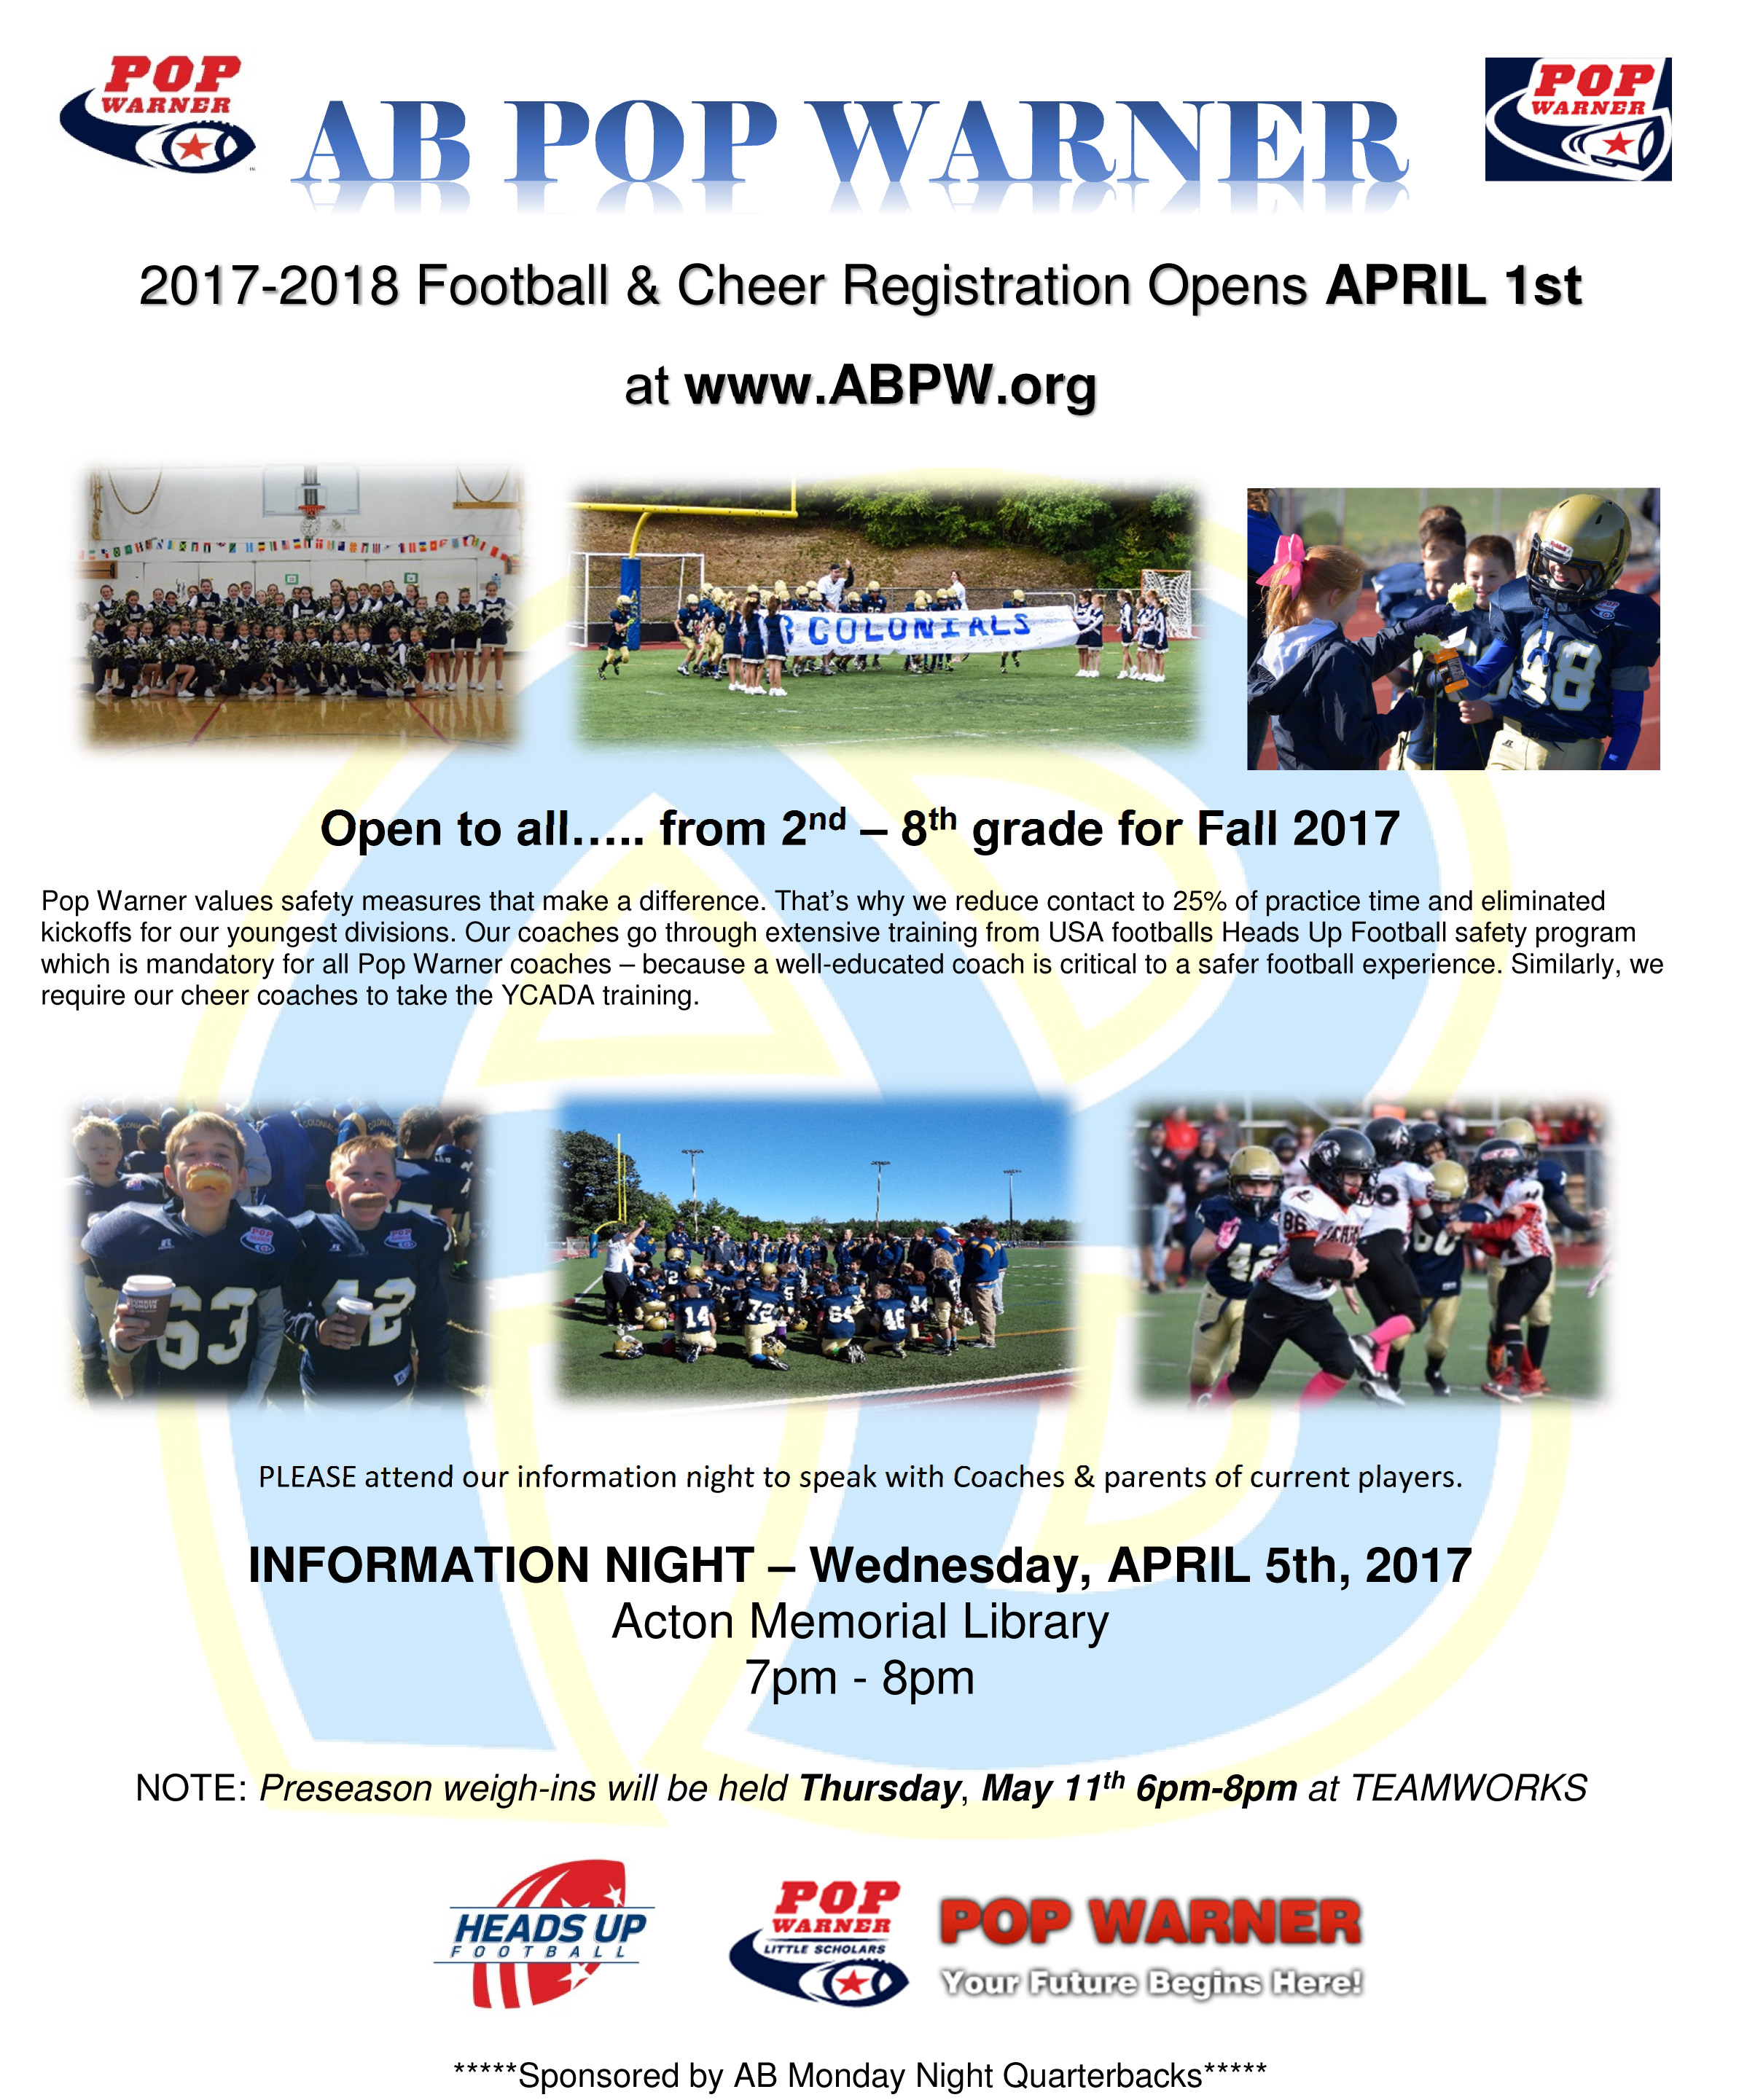 AB POP WARNER - 2017-2018 Football & Cheer Registration Open